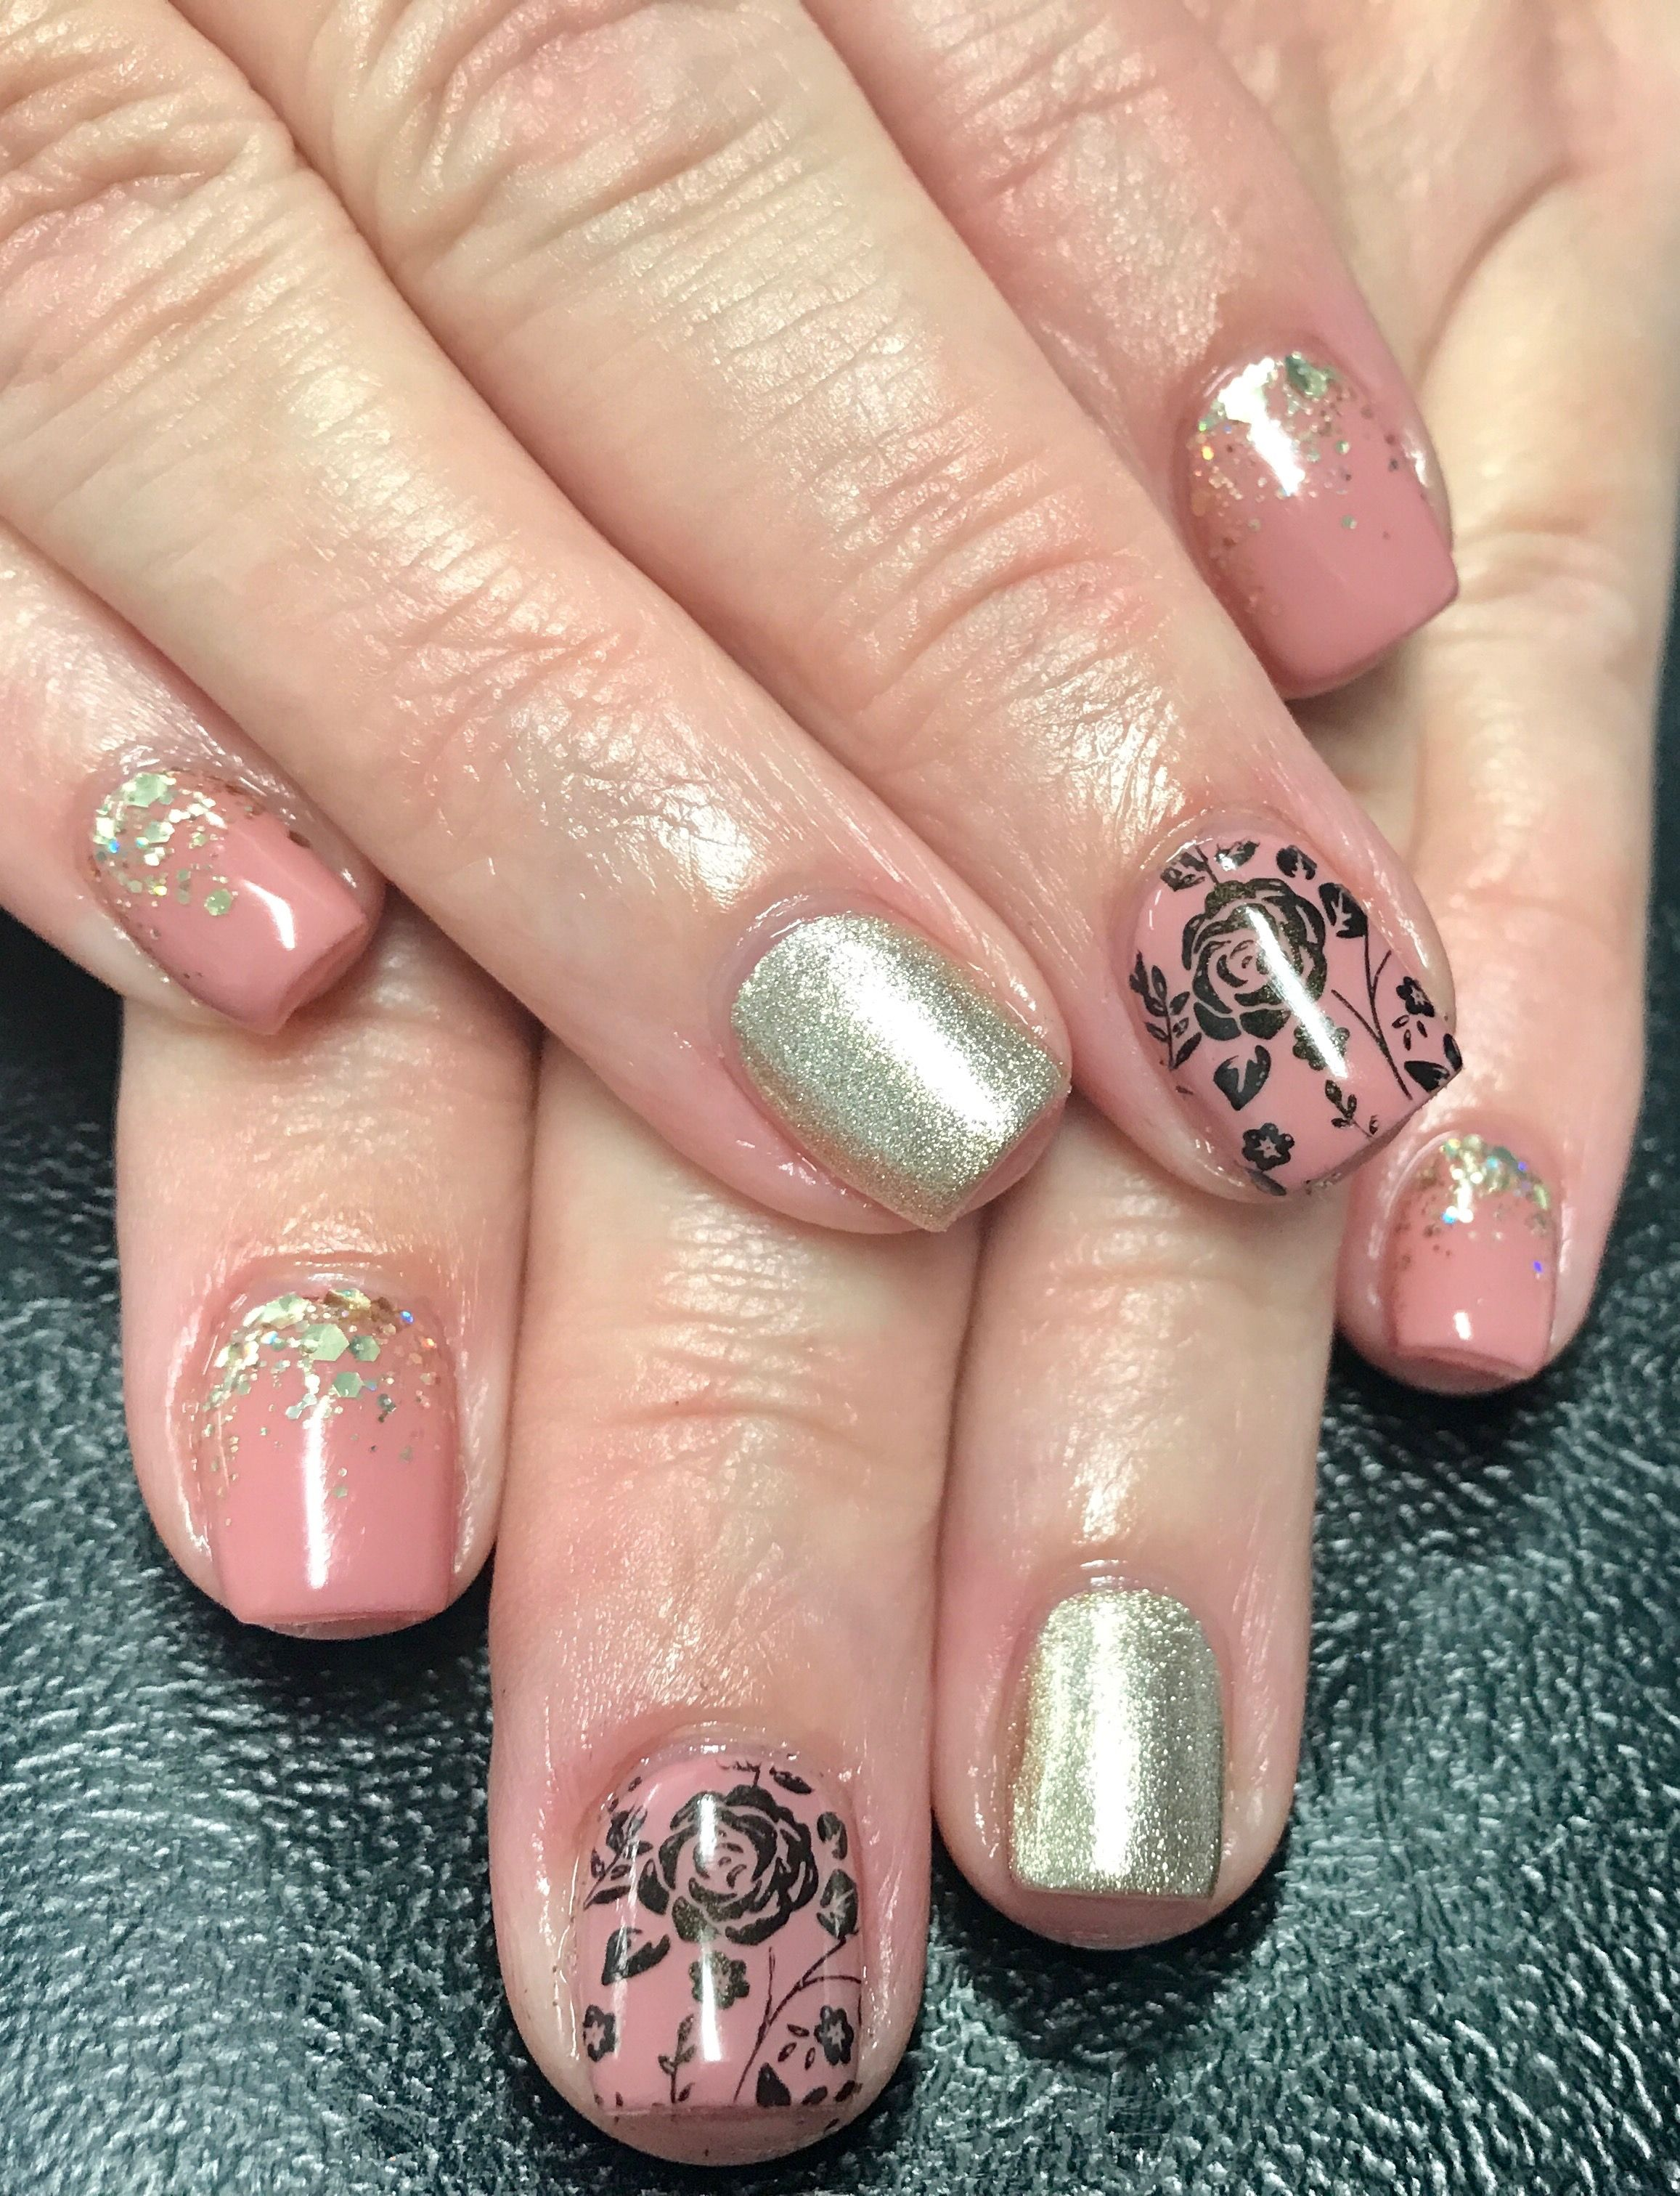 Nude And Gold Acrylic Nails Black Rose Nail Art Gold Glitter